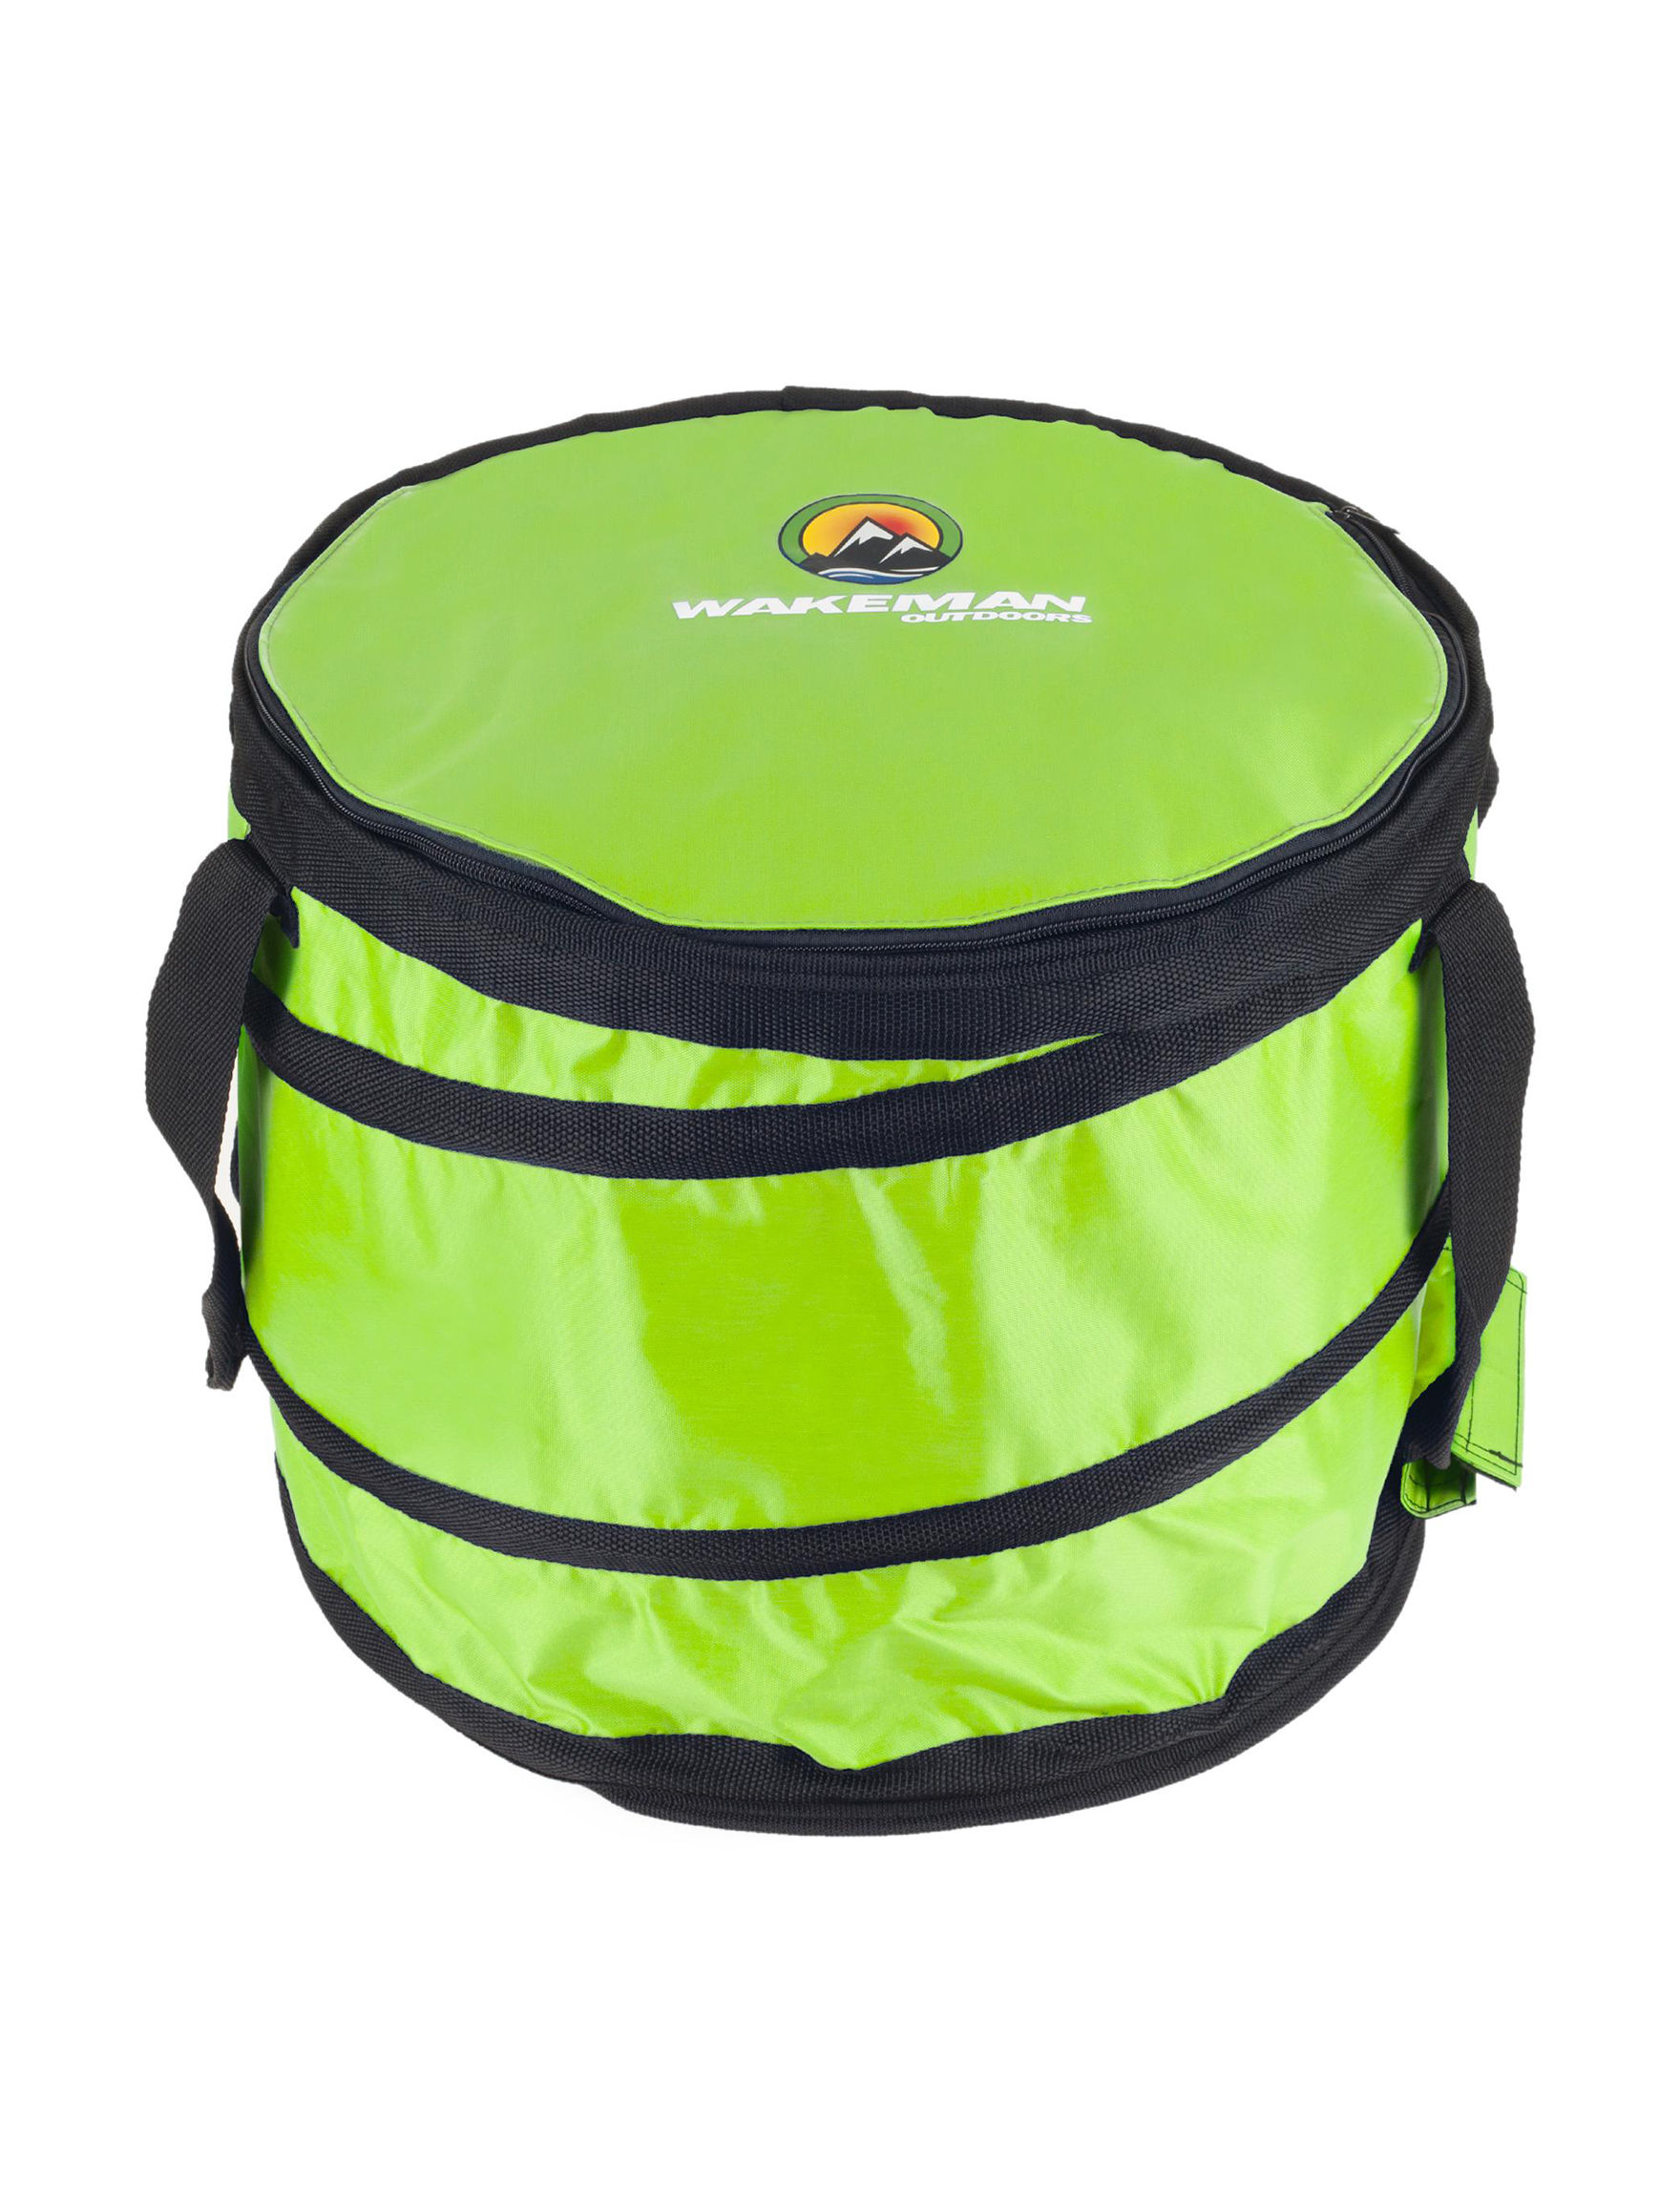 Wakeman Lime Coolers Camping & Outdoor Gear